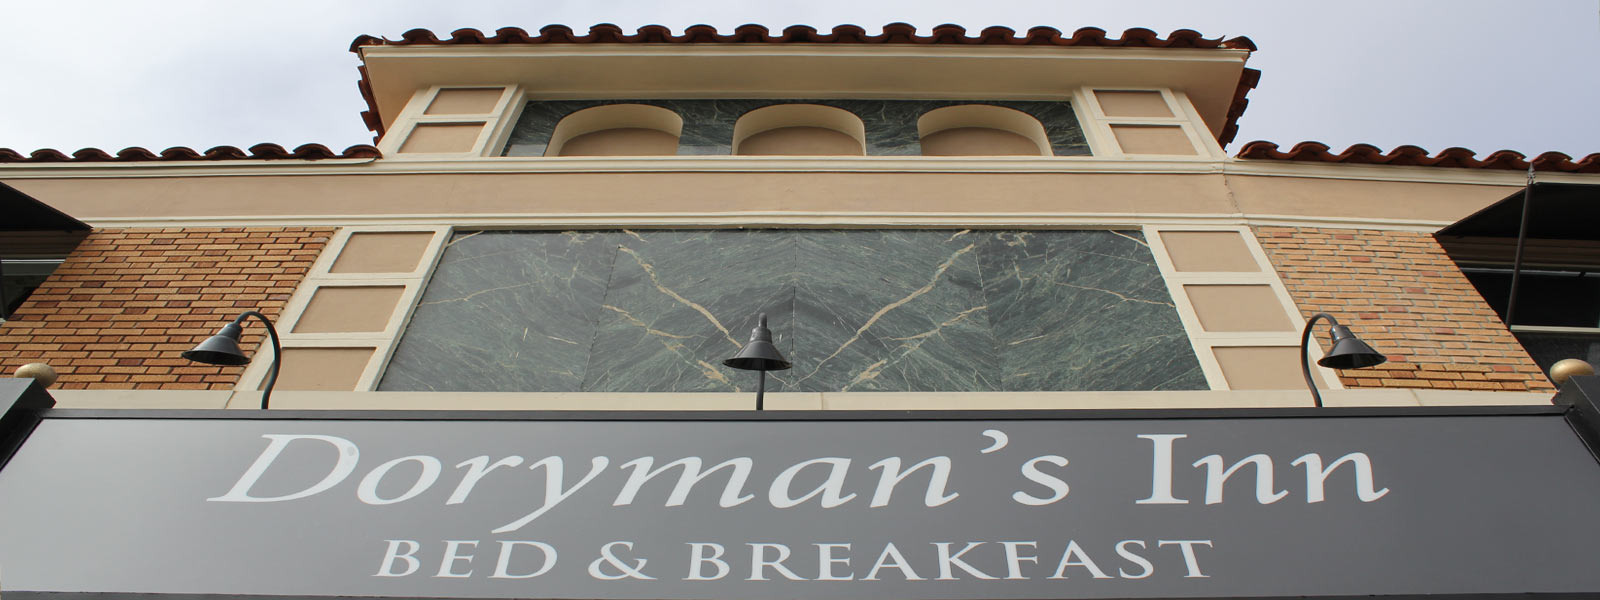 Front entrance Dorymans Inn